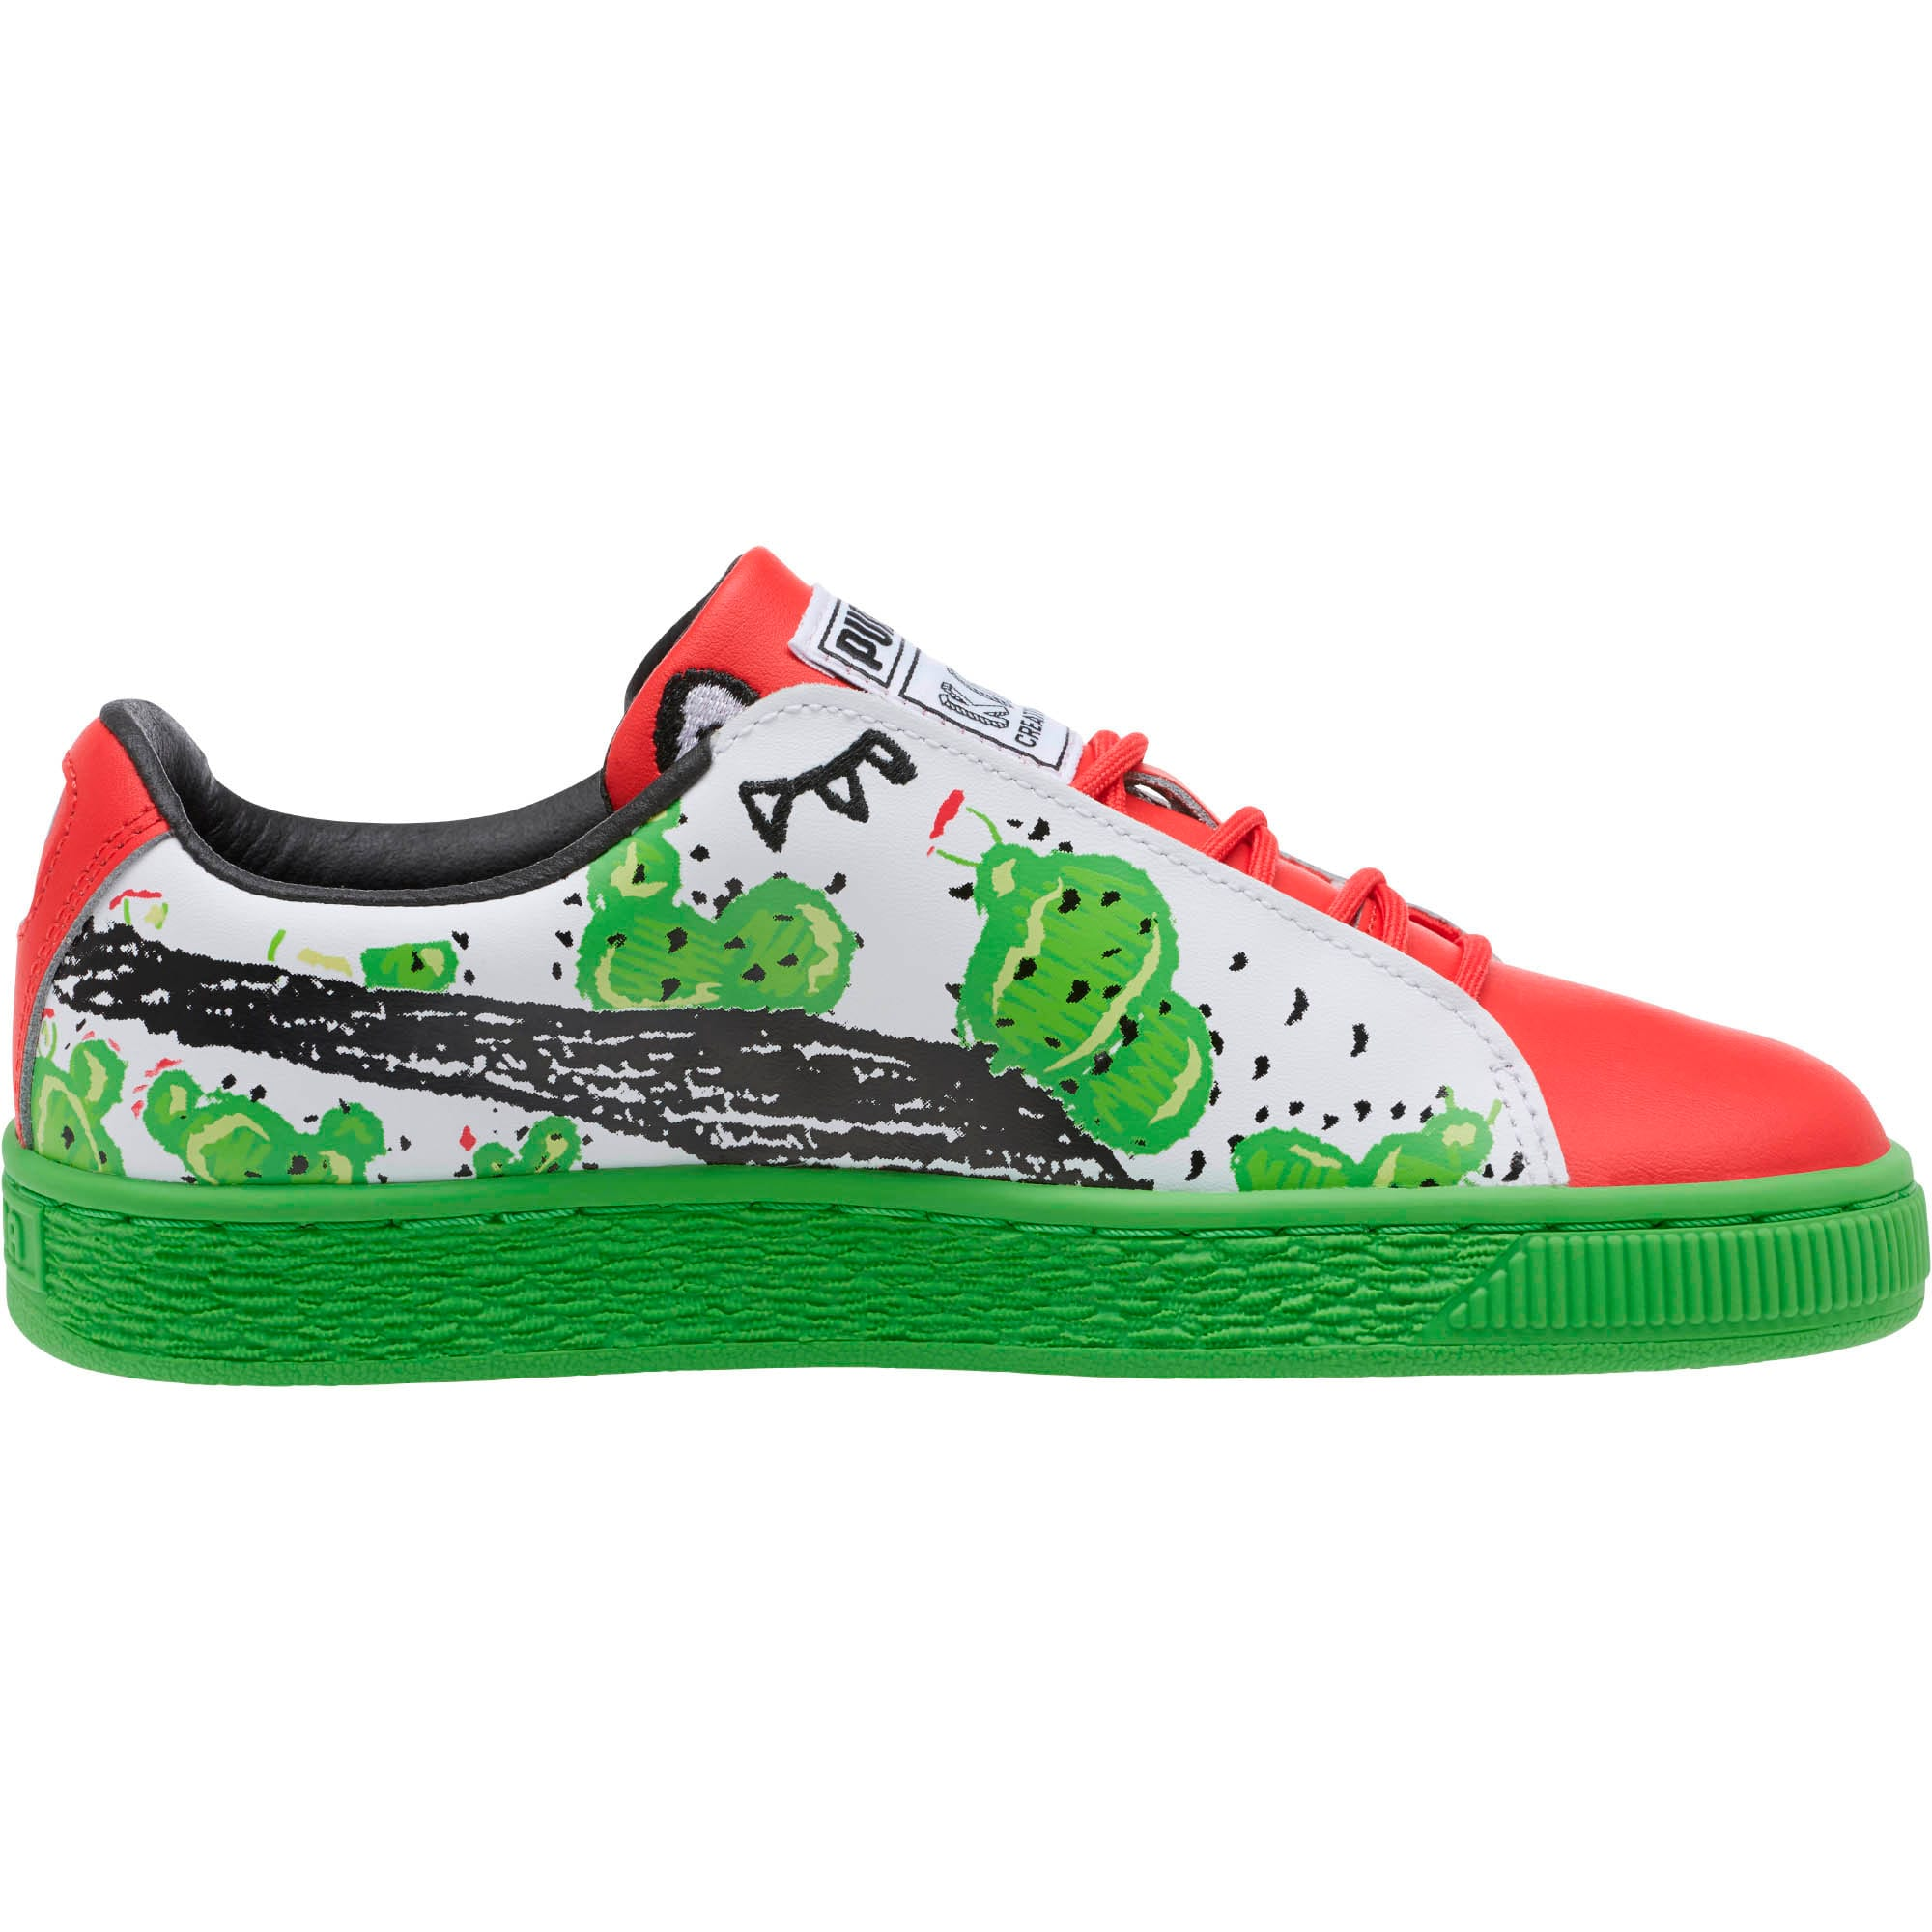 Basket Cactus Monster Sneakers JR, Poinsettia-Green-White, large